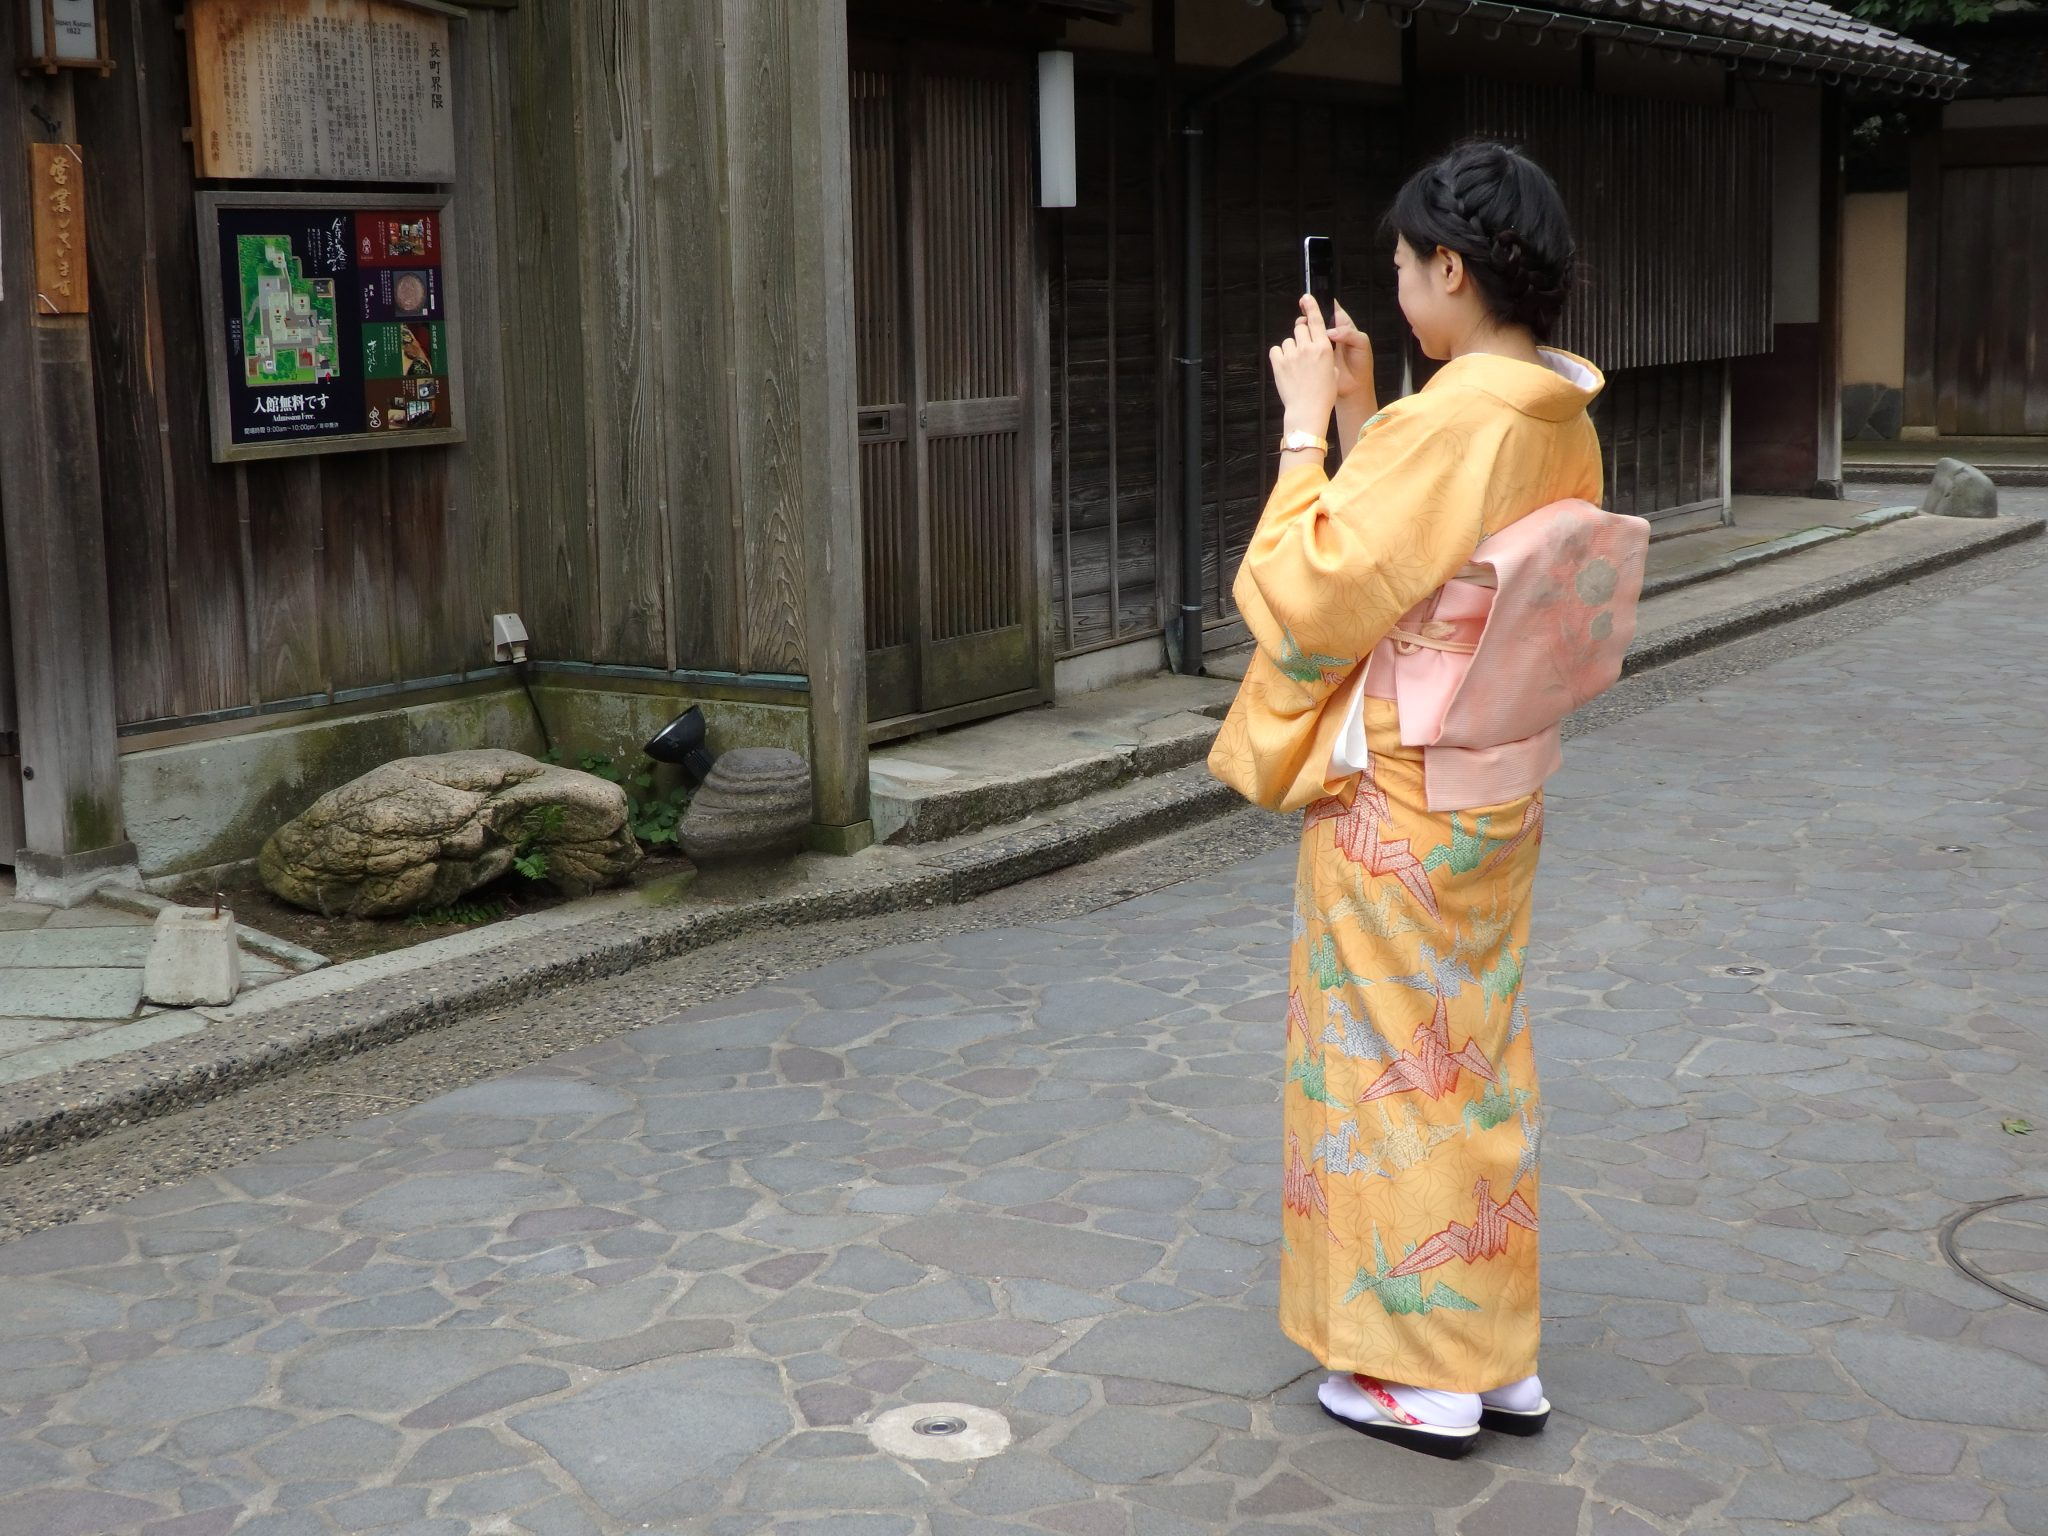 a girl in traditional clothing takes a picture with her mobile phone in Kanazawa